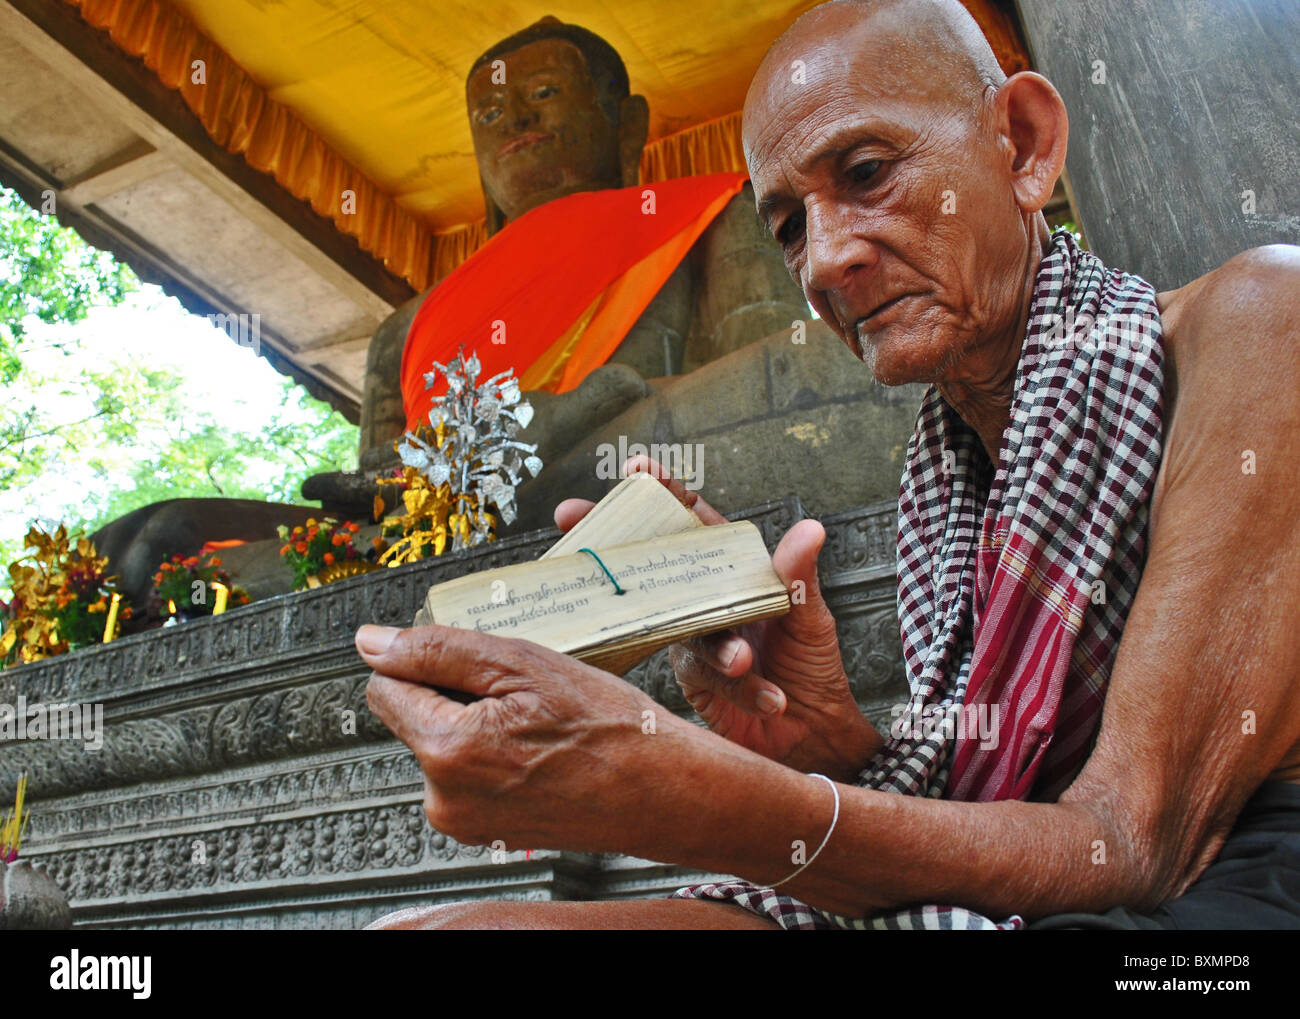 Old Buddhist monk reading scripts at a temple near Angkor Thom, Cambodia - Stock Image